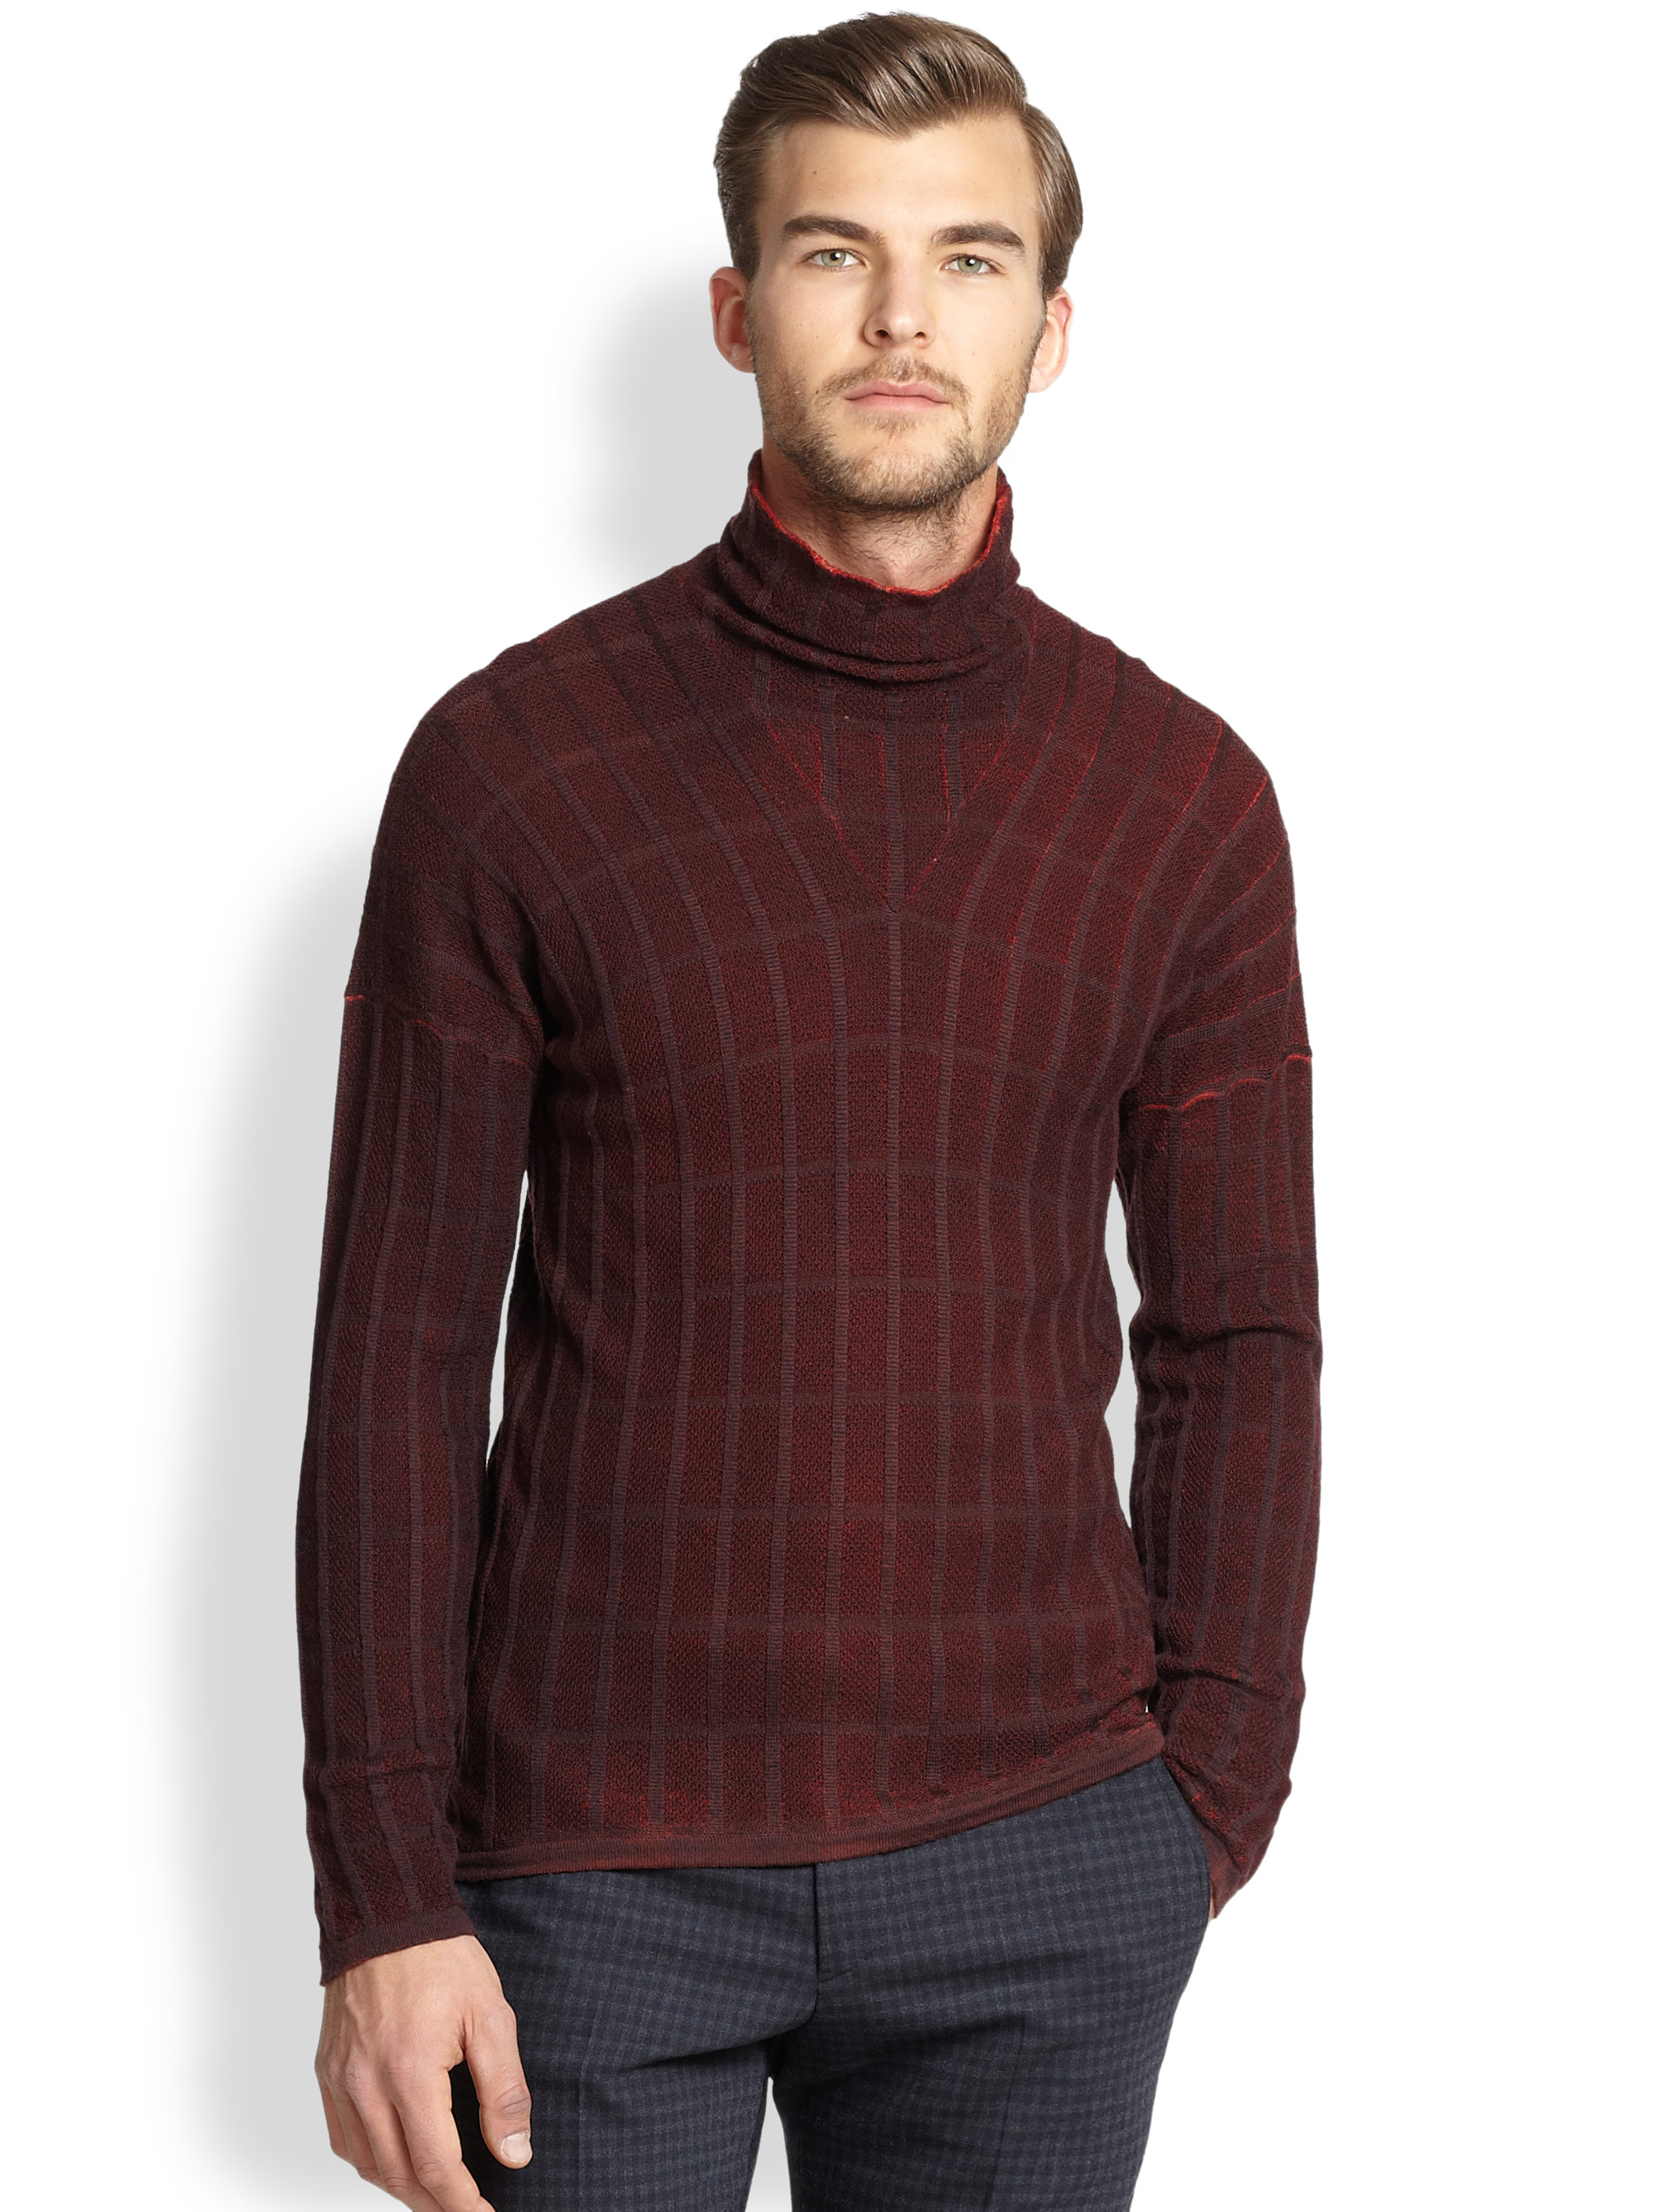 Lyst Armani Turtleneck Sweater In Brown For Men